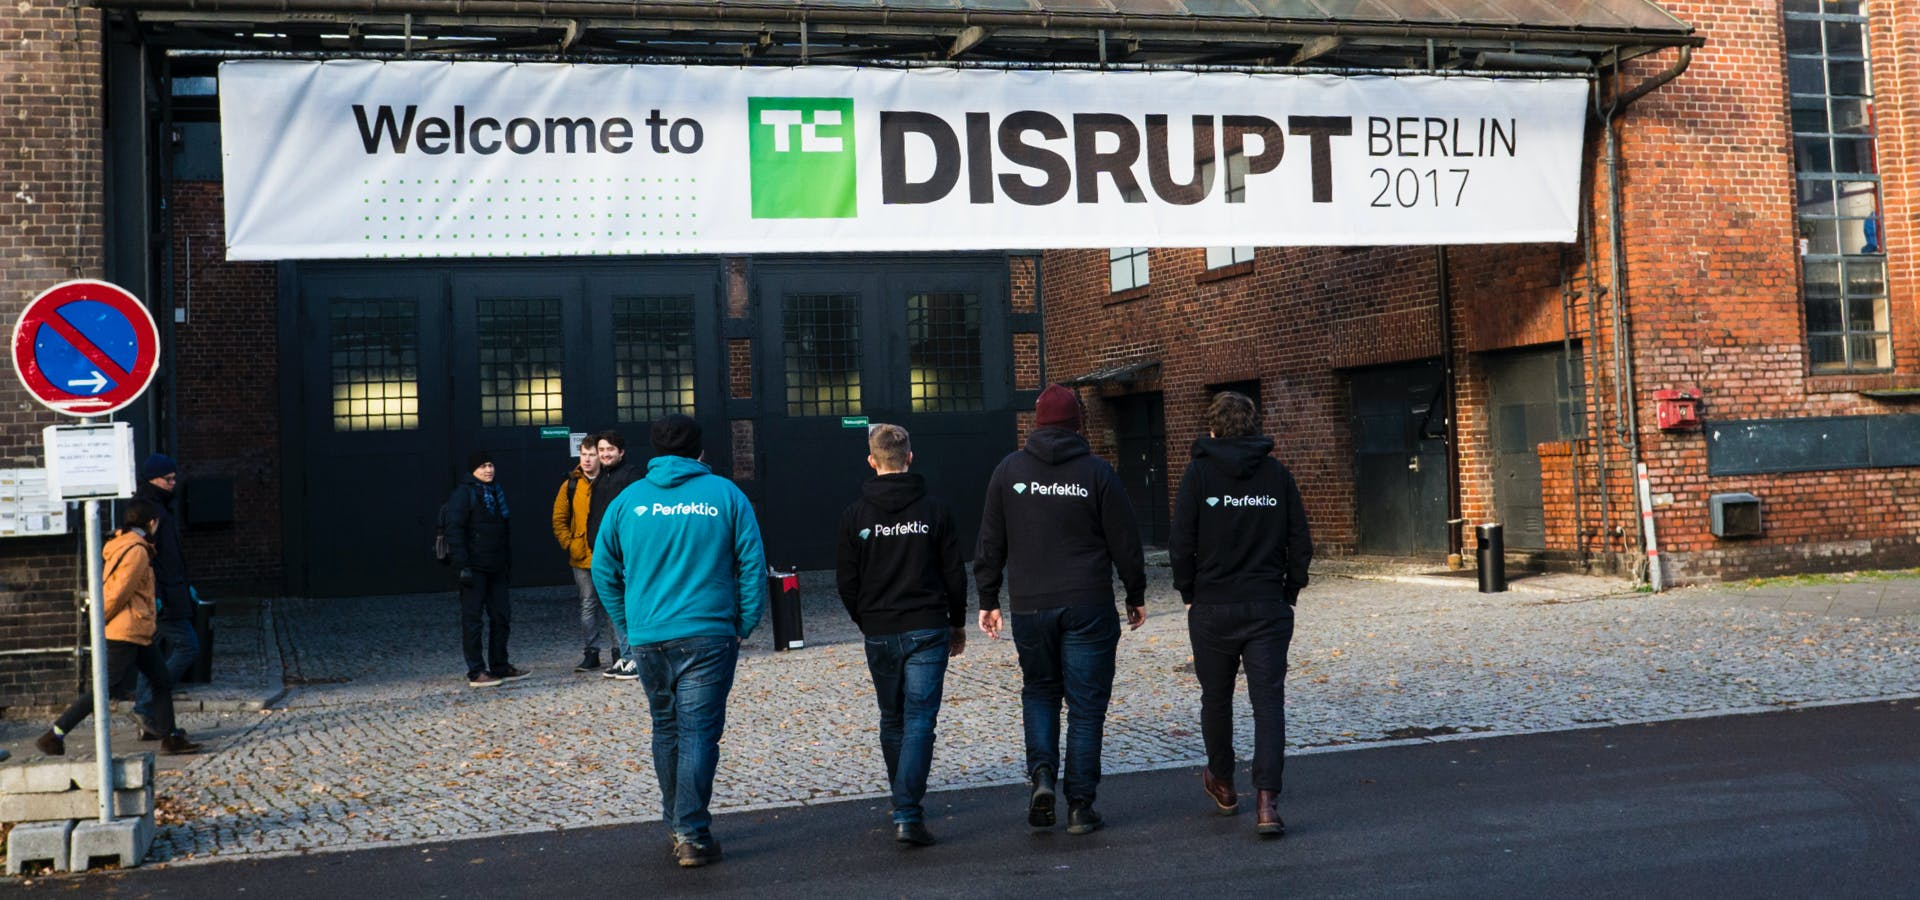 4 guys waling towards TechCrunch Disrupt Berlin venue